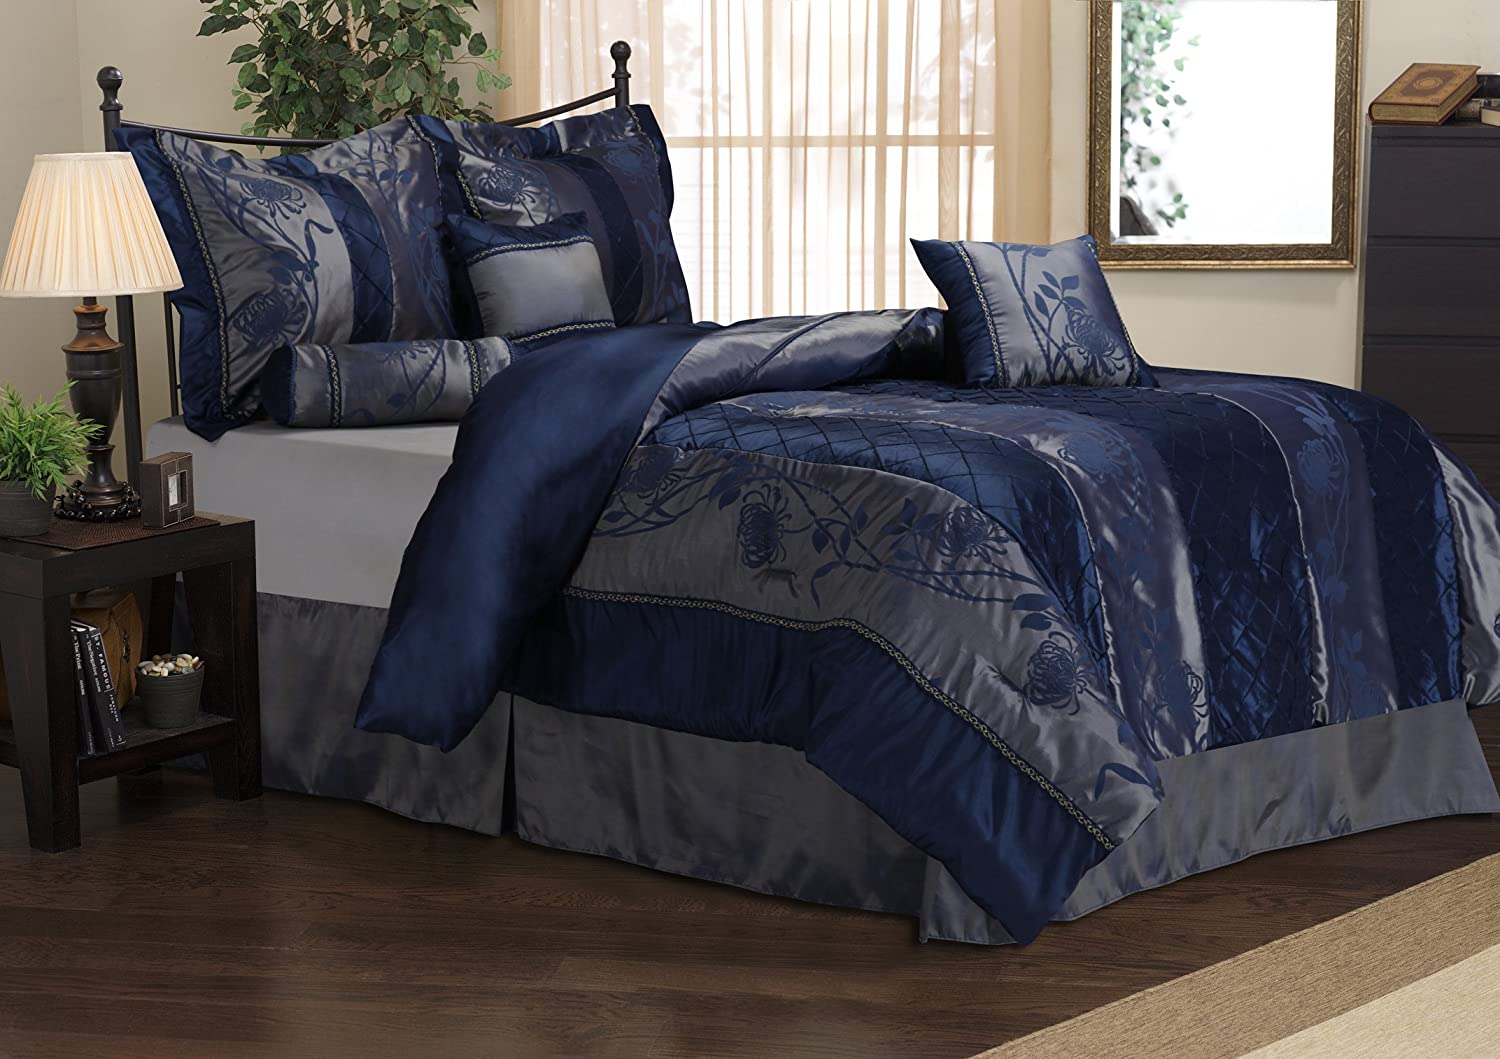 Navy Blue Comforter Sets Fel7 Com